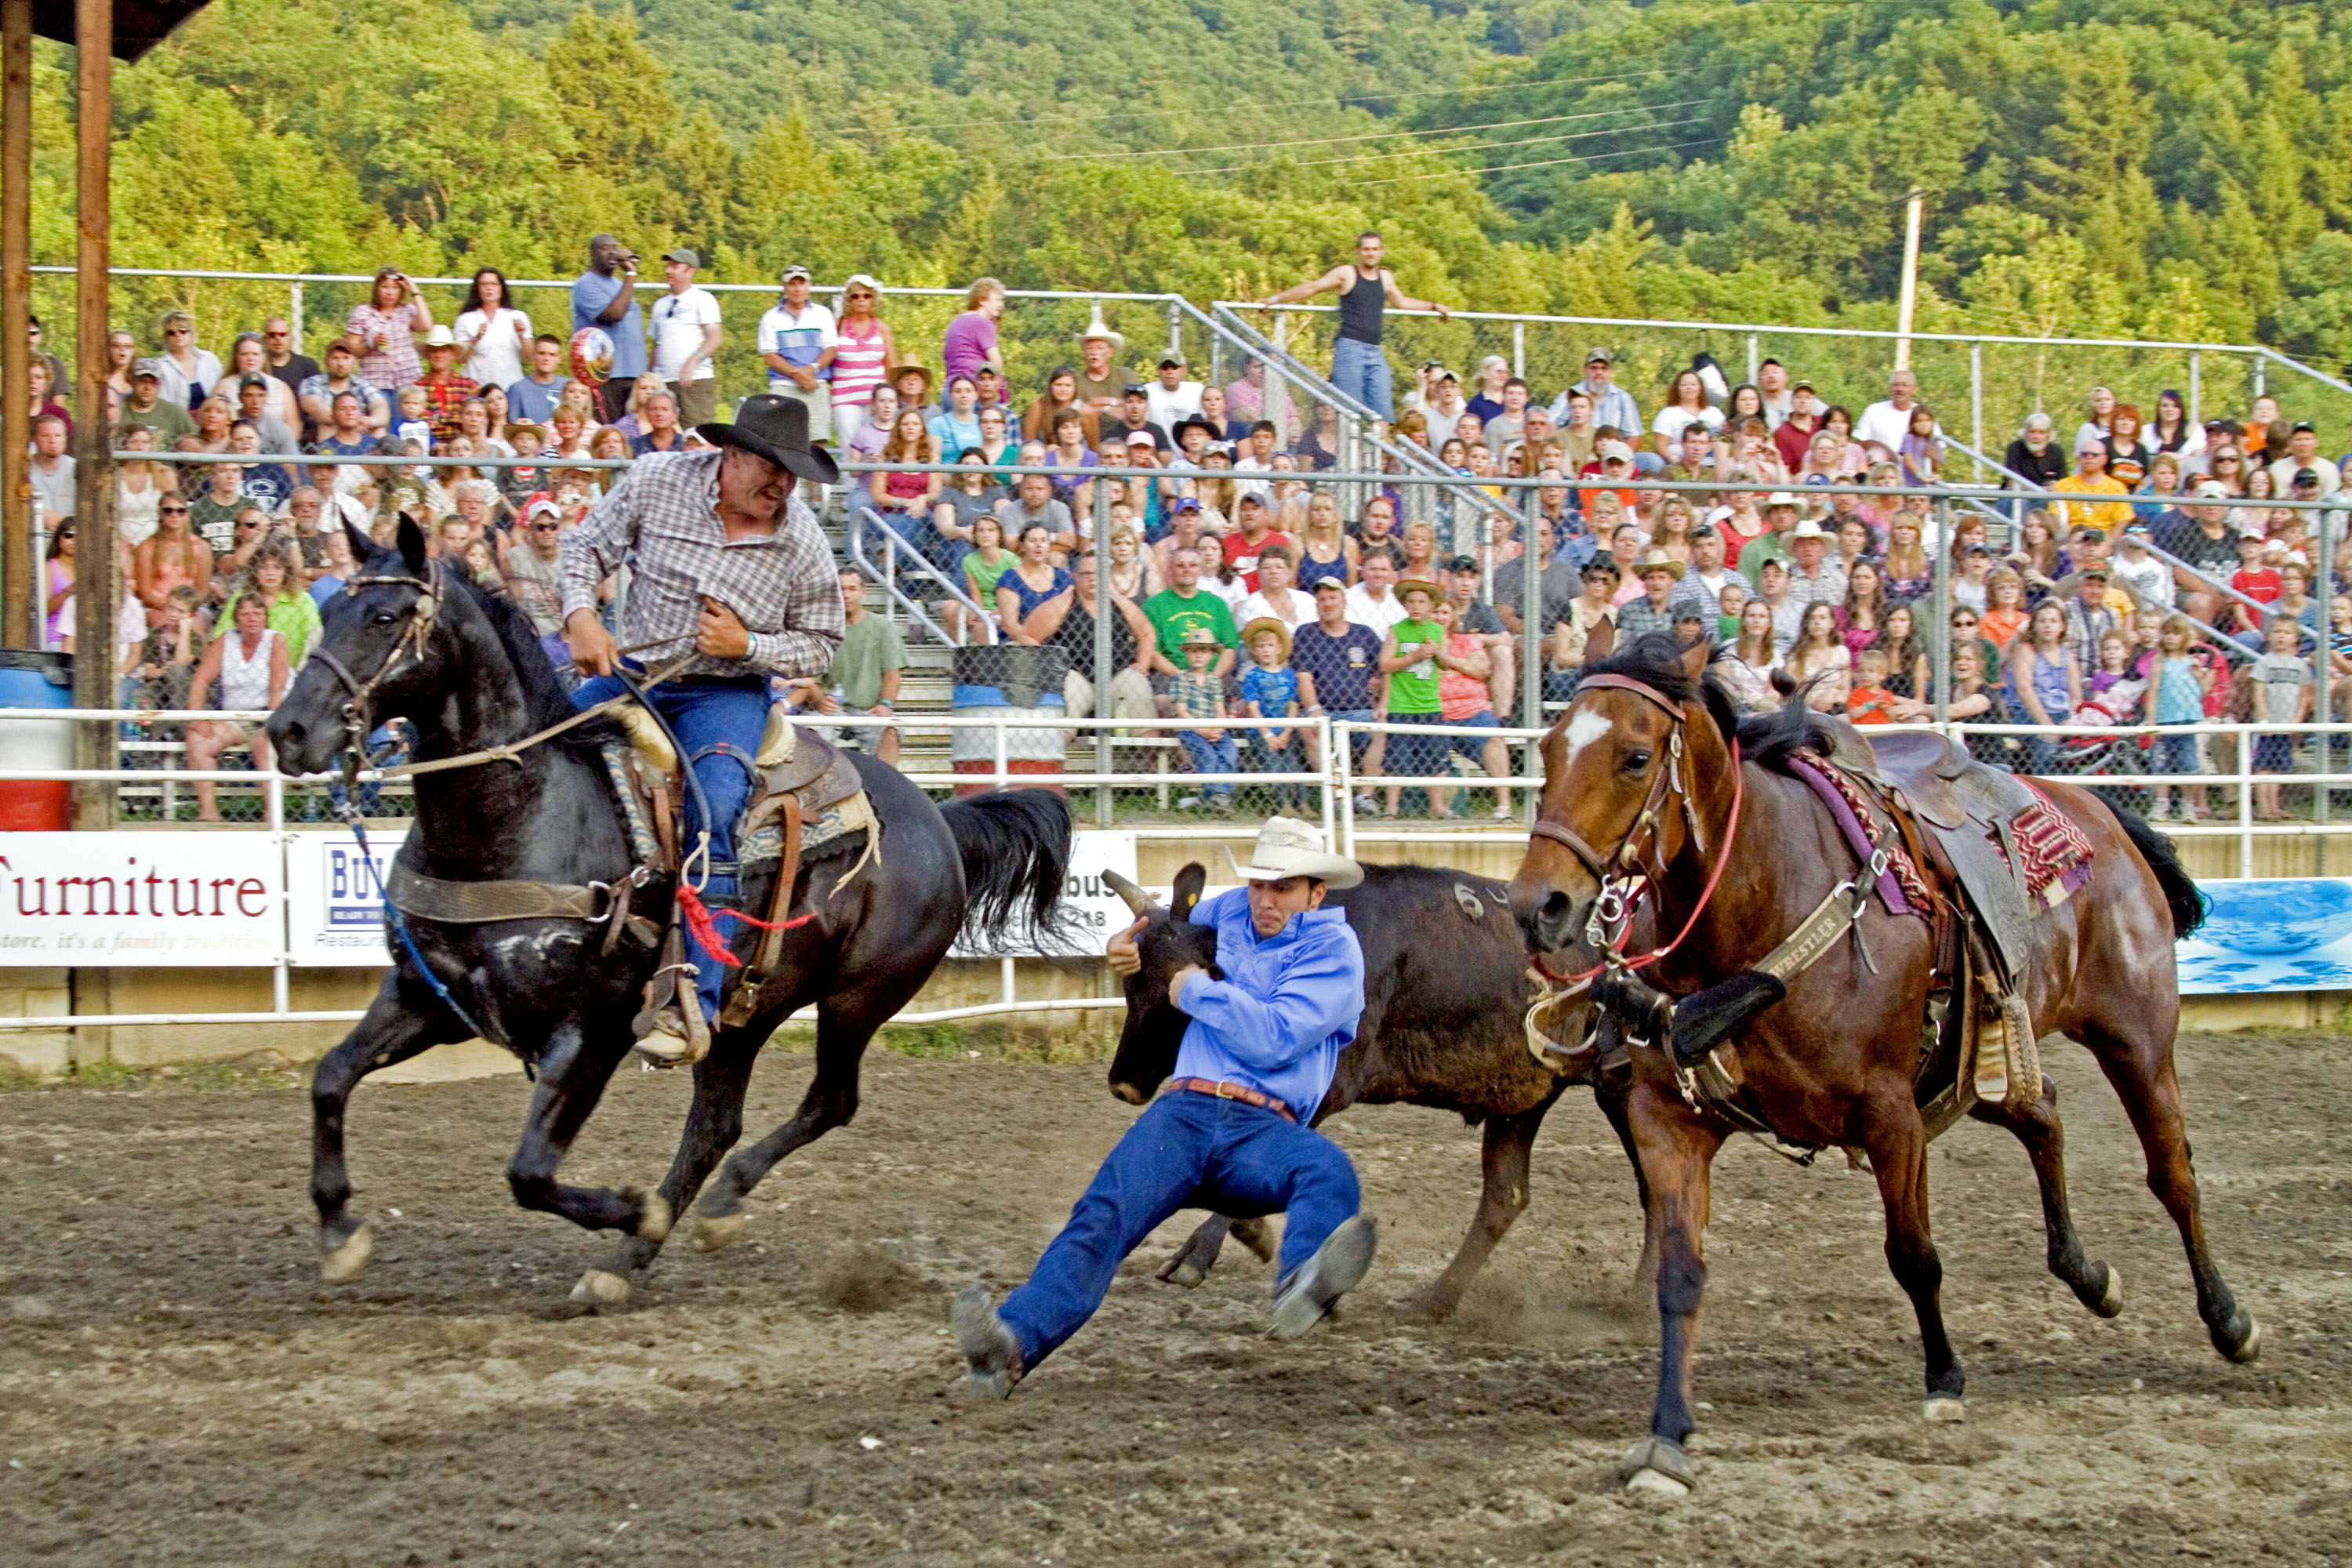 Volunteering 15th Annual Central Pa Rodeo